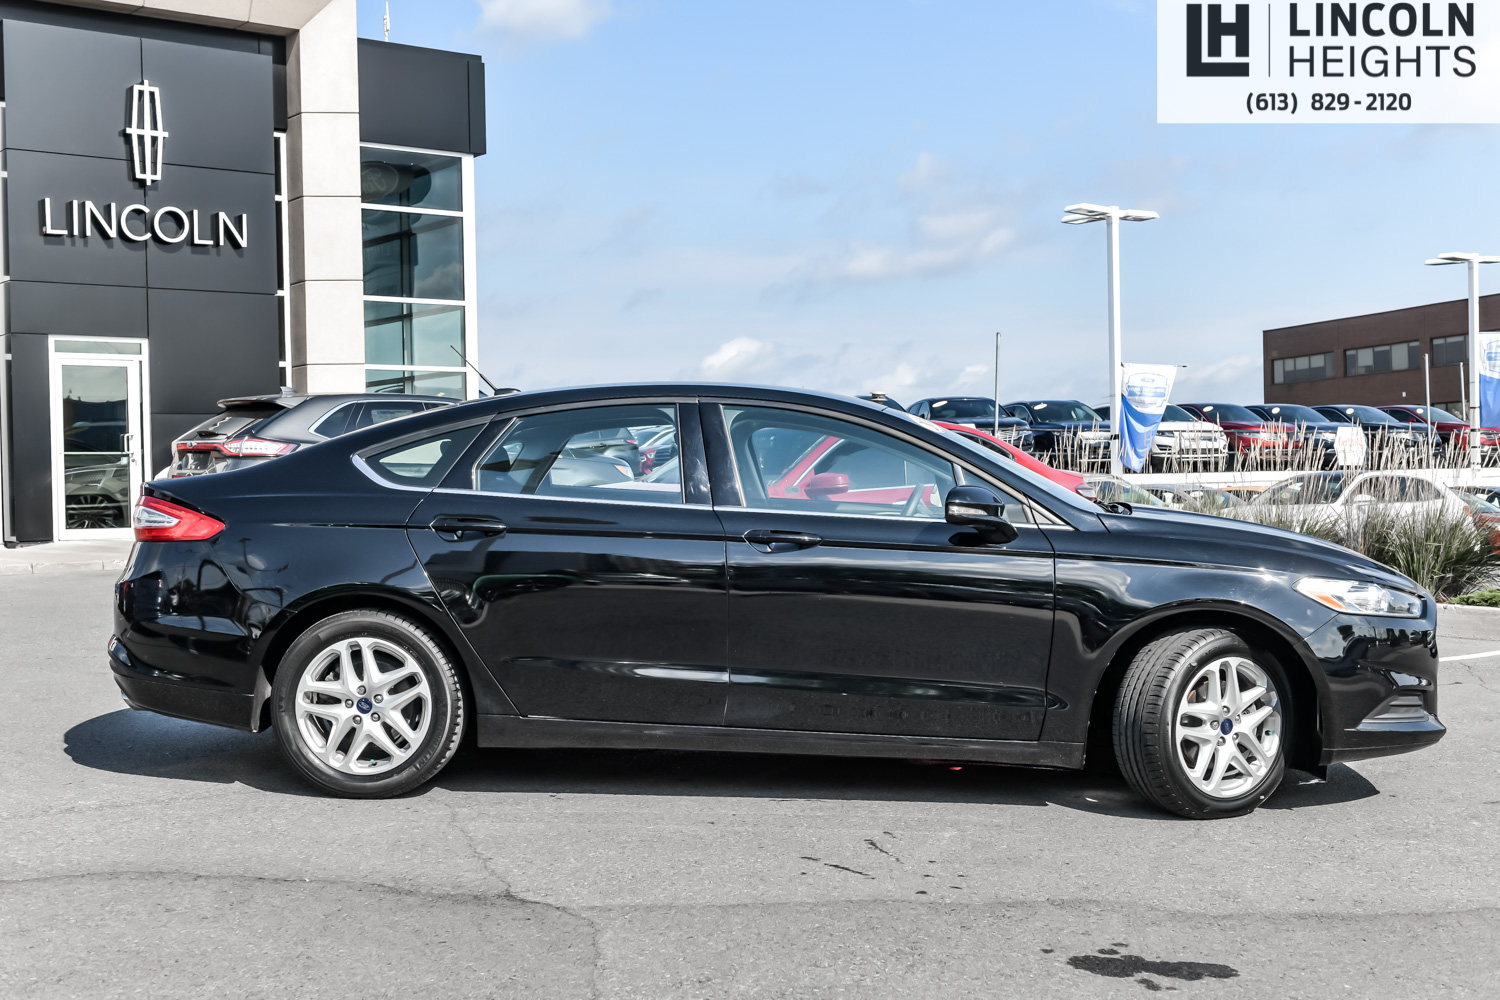 Ford Fusion: Heated windows and mirrors